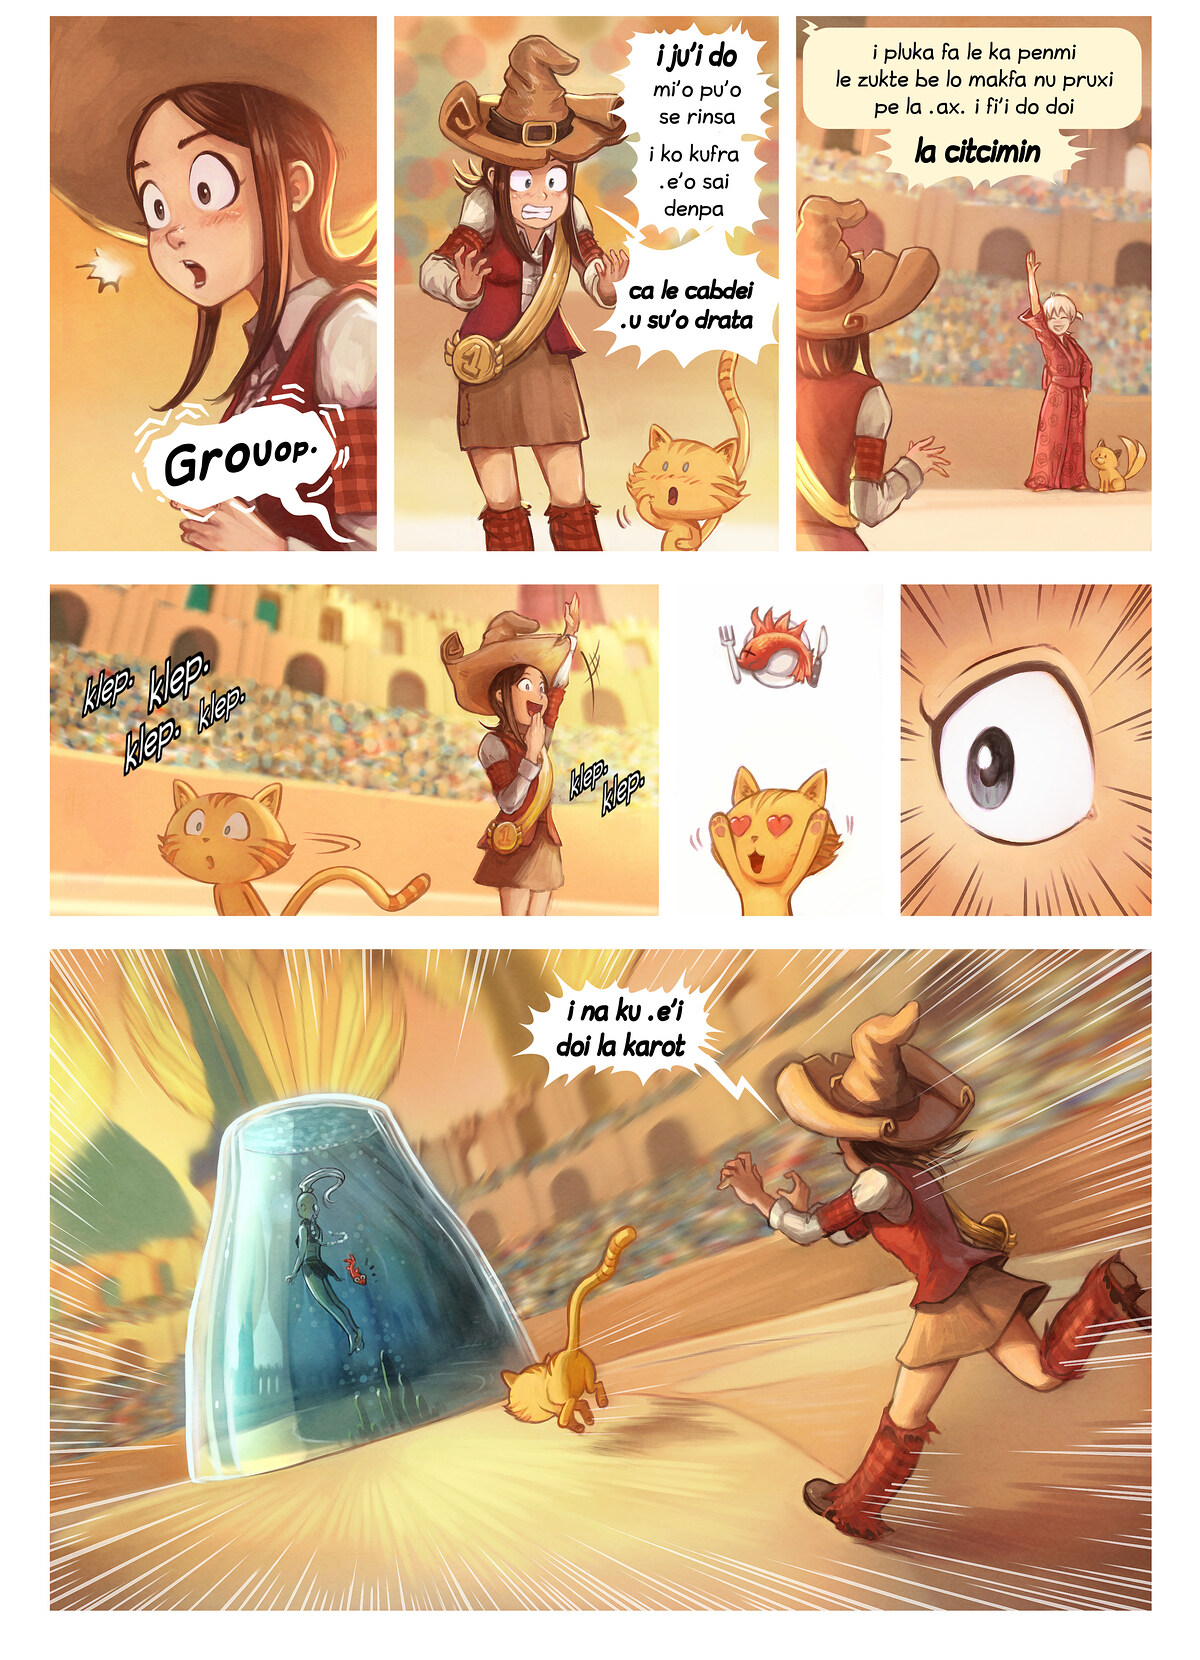 A webcomic page of Pepper&Carrot, pagbu 21 [jb], papri 5